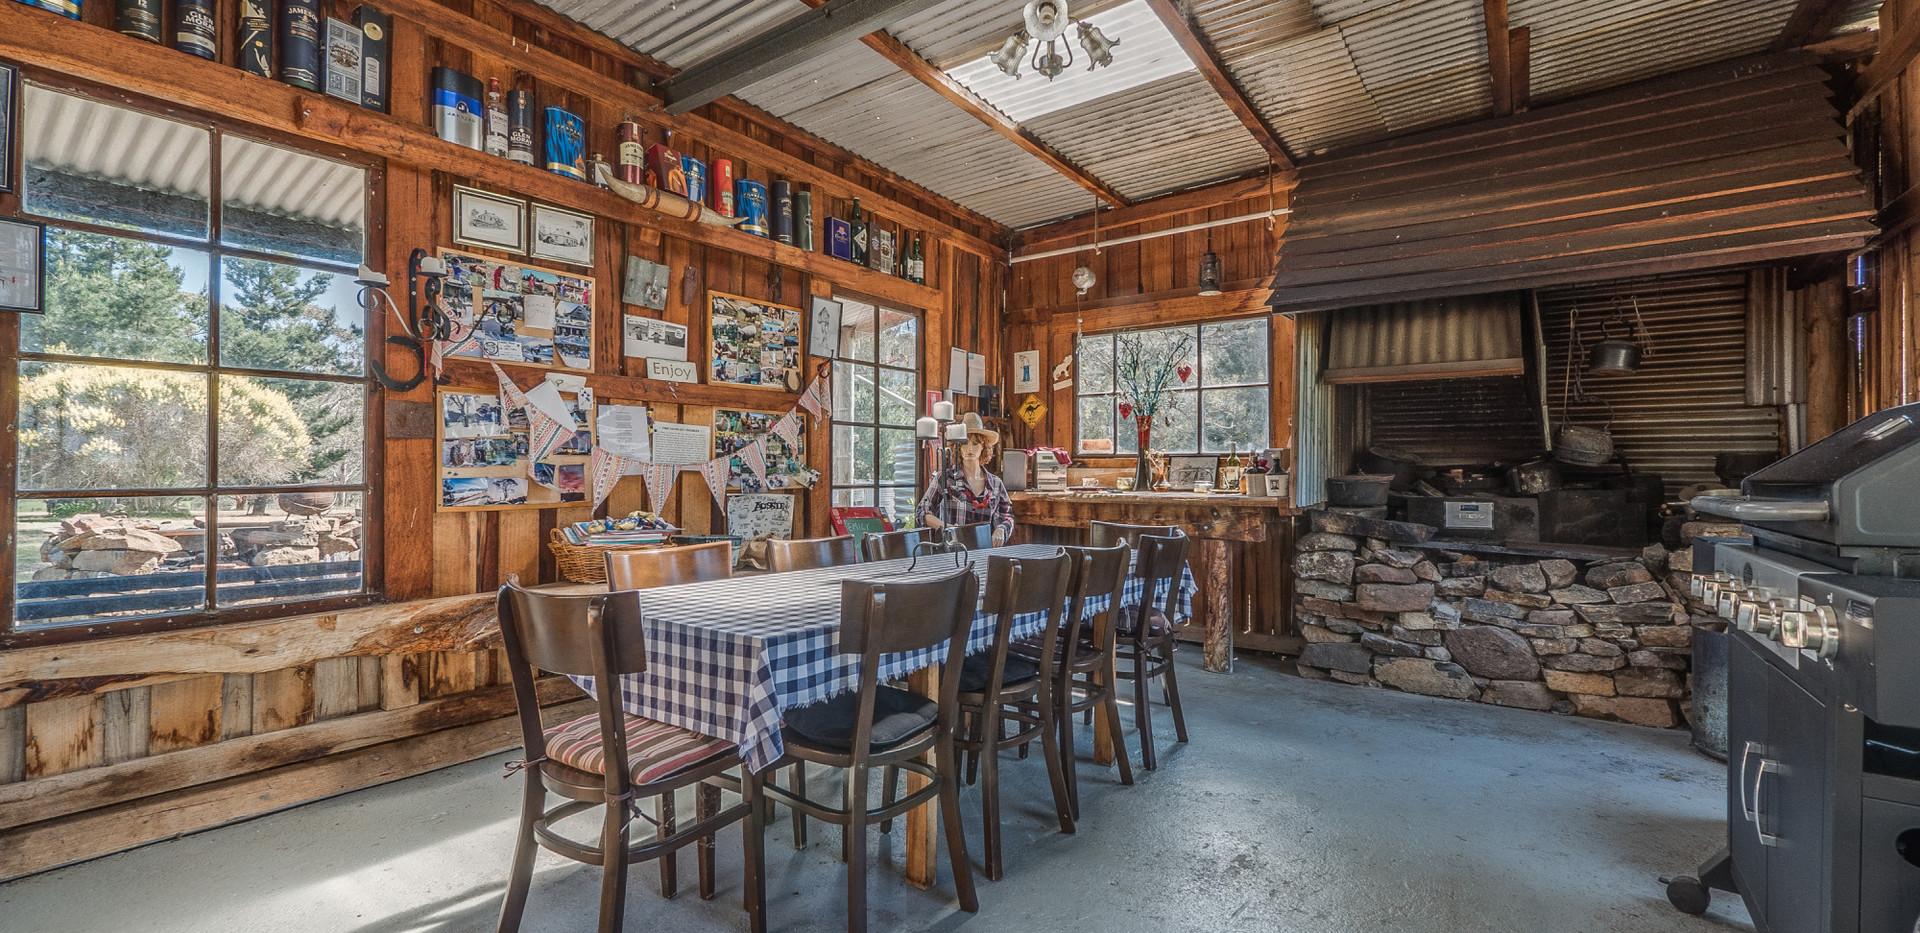 Interior of rustic BBQ hut